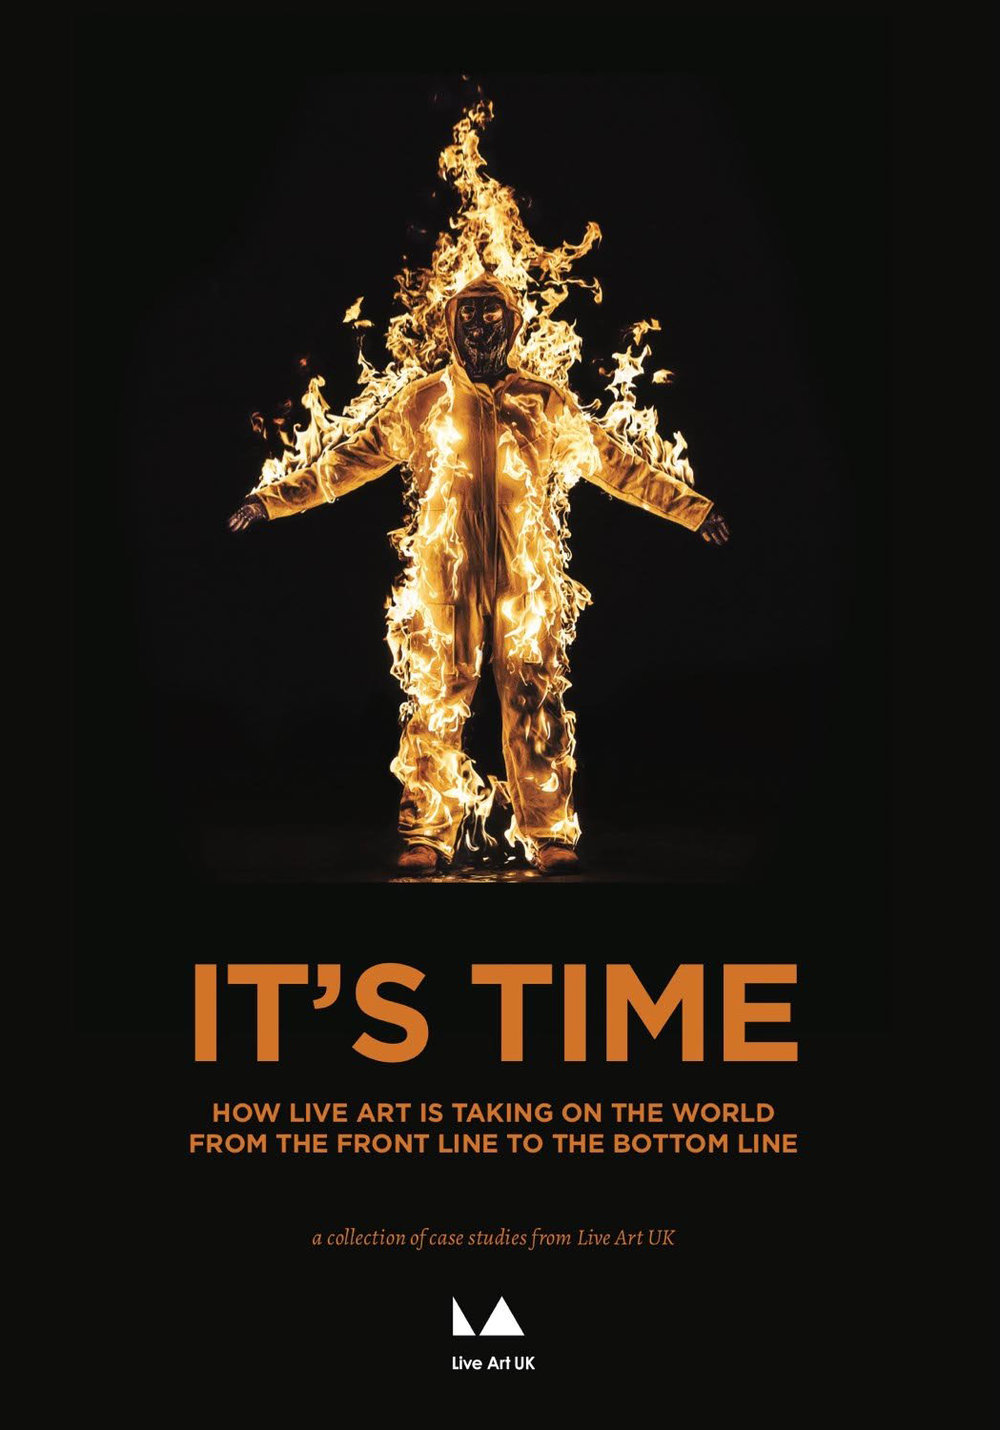 It's Time: how Live Art is taking on the world from the front line to the bottom line